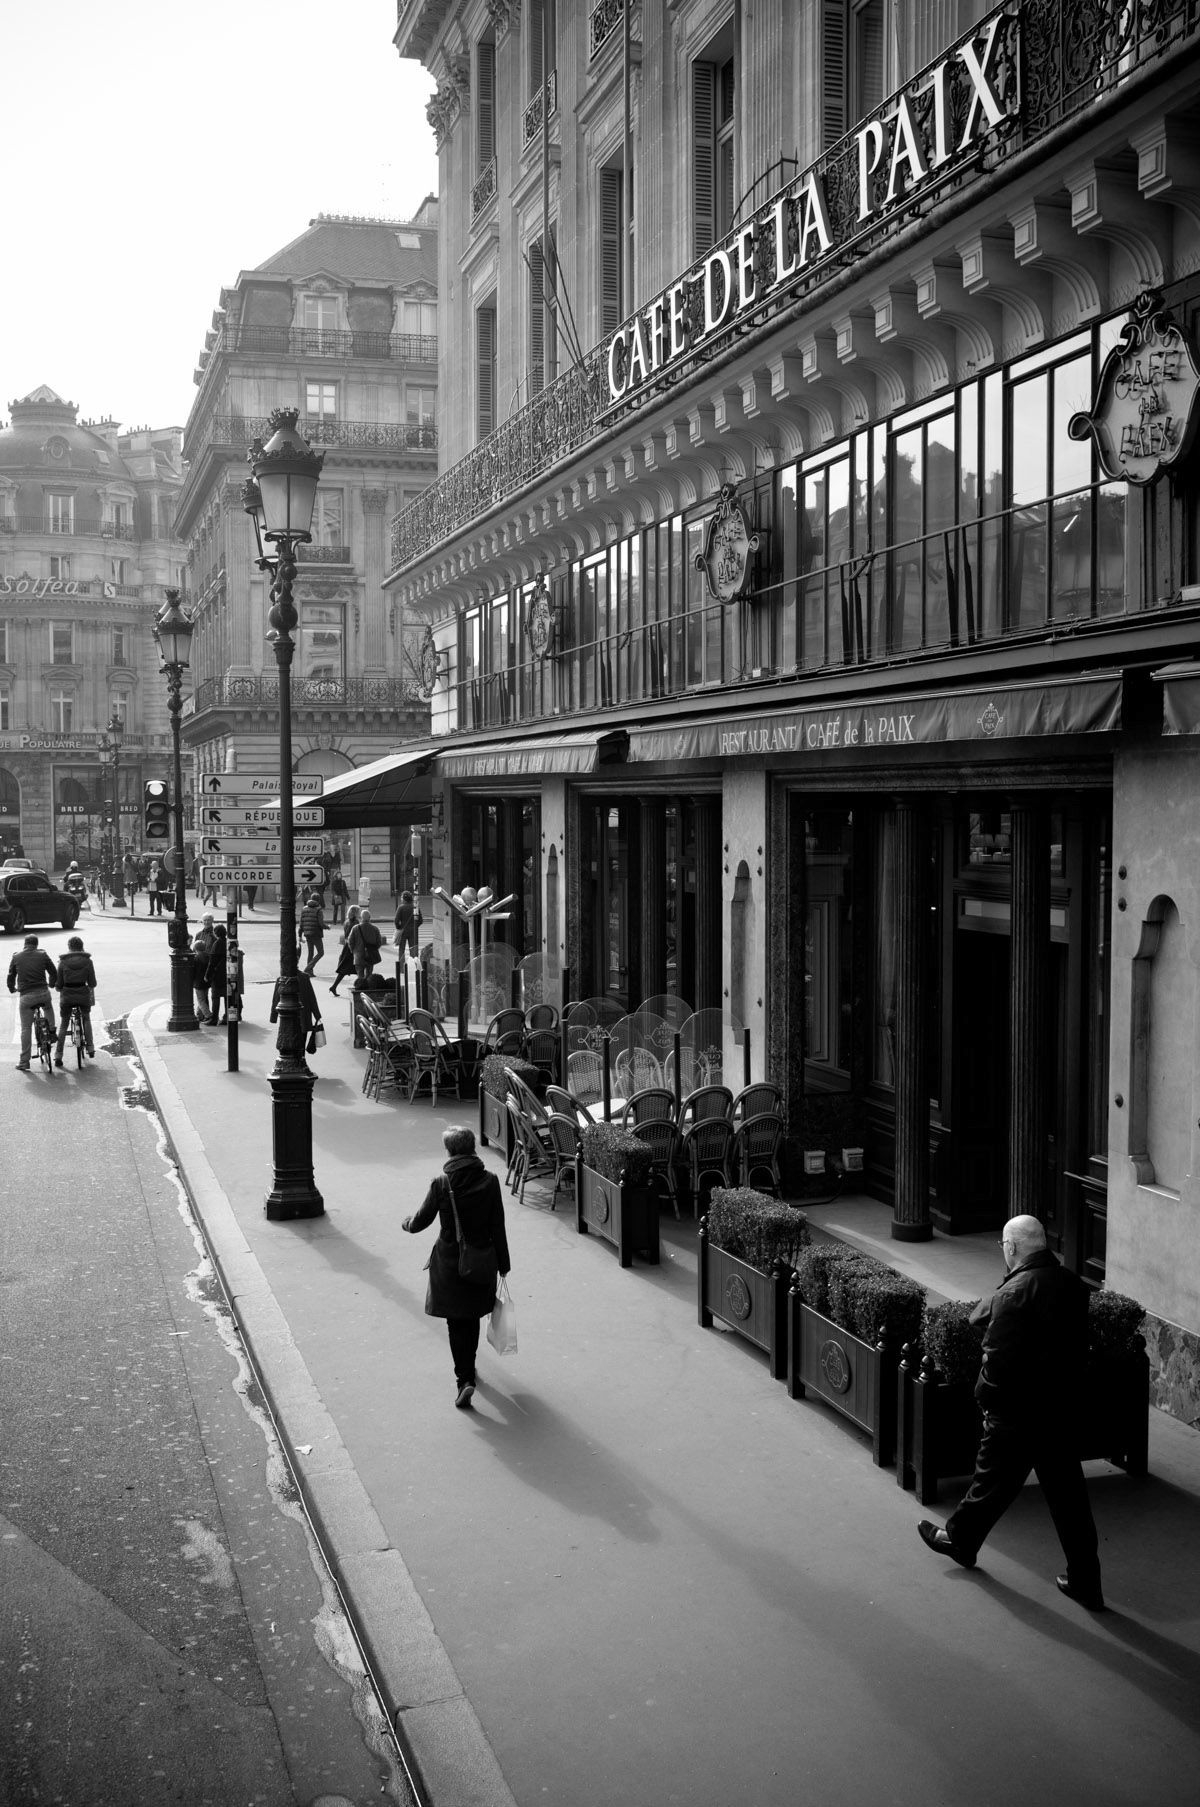 Café Des Capucines Paris Cafe De La Paix Boulevard Des Capucines 75009 Paris Photo